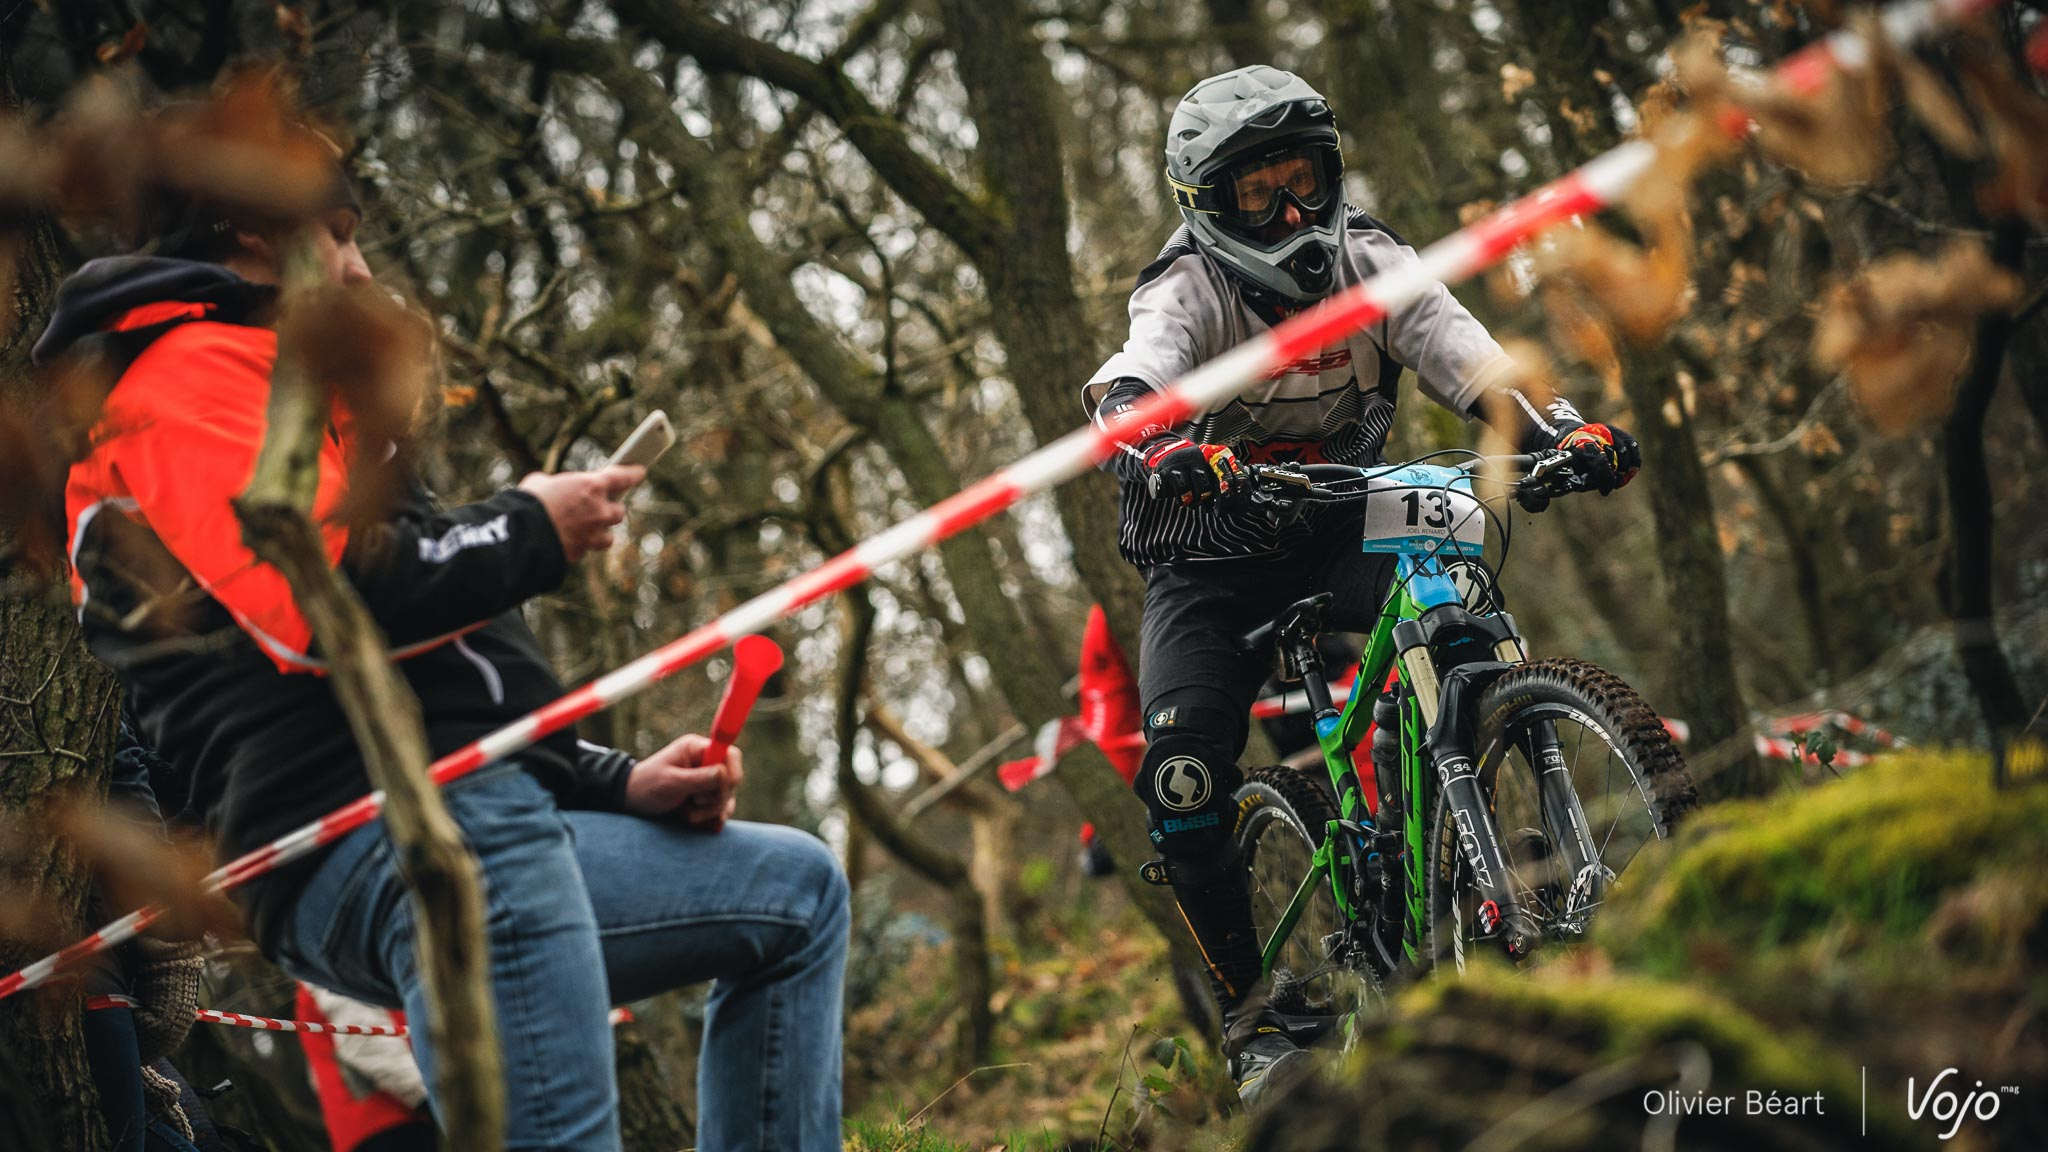 Belgian_Enduro_Cup_Chaudfontaine_2016_Copyright_OBeart_Vojomag-19